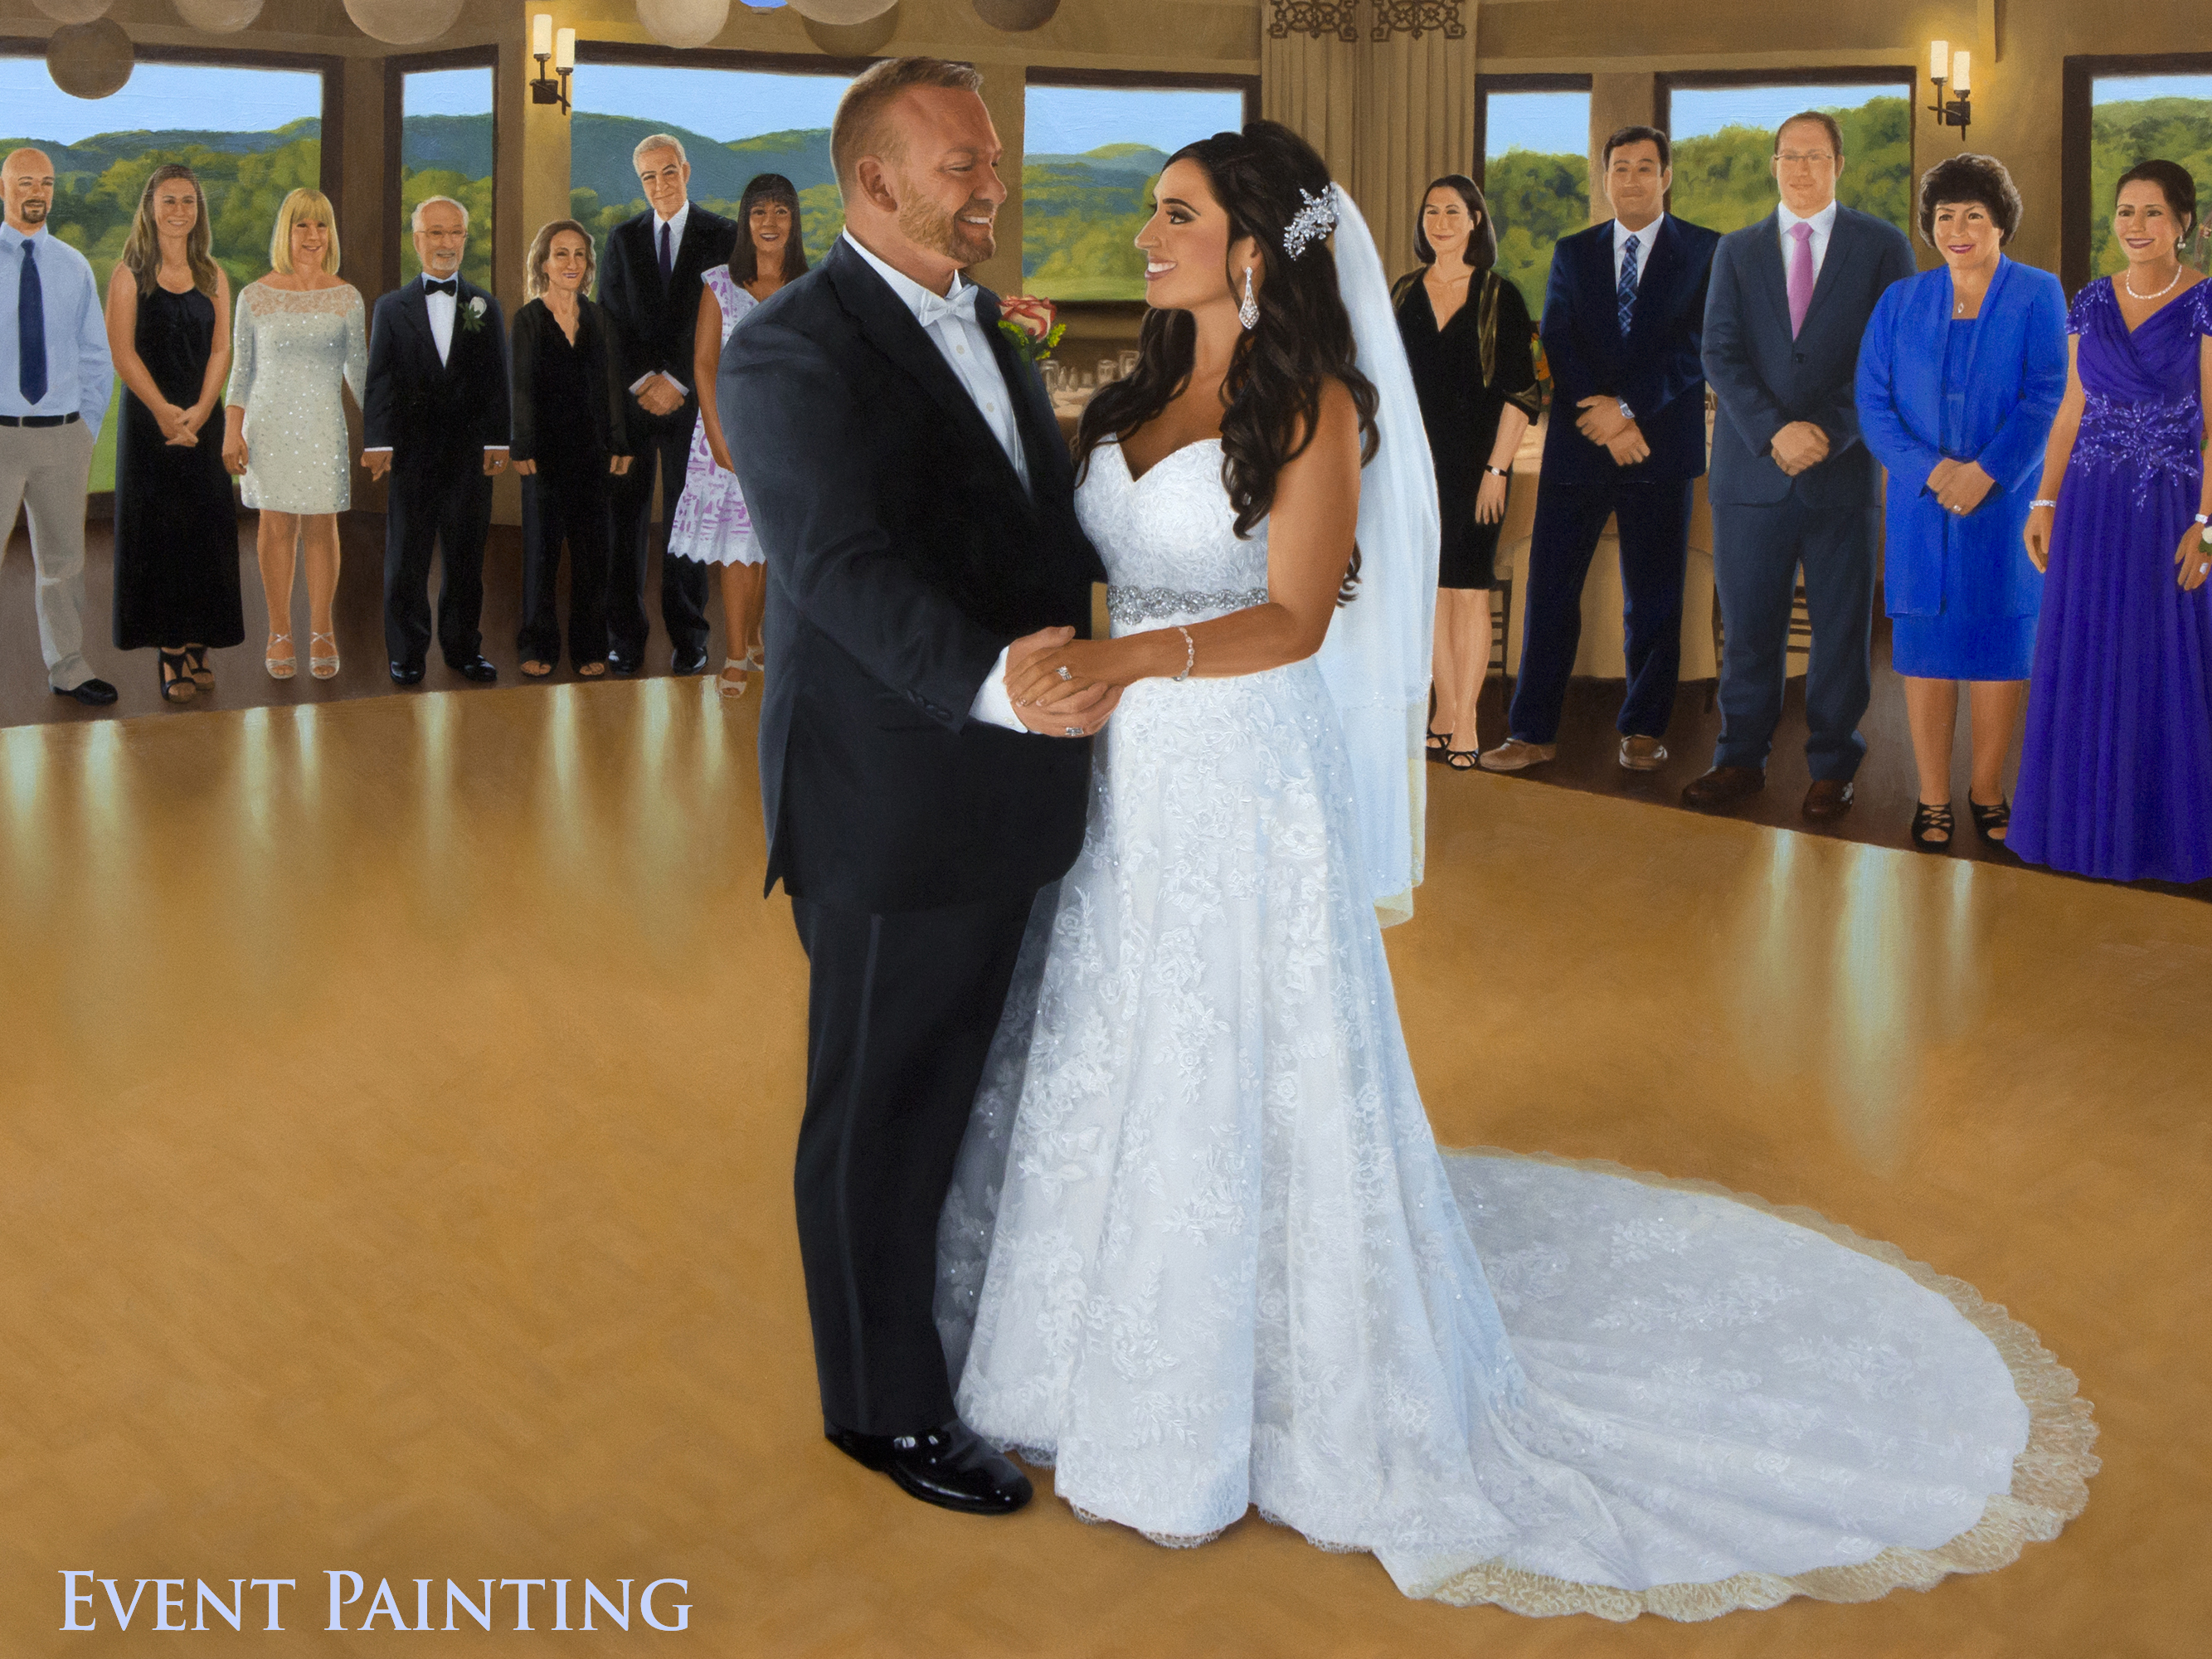 Scenic Golf Club Reception In The Rustic Hills Of New Jersey - Live Event Painter Anthony Galati